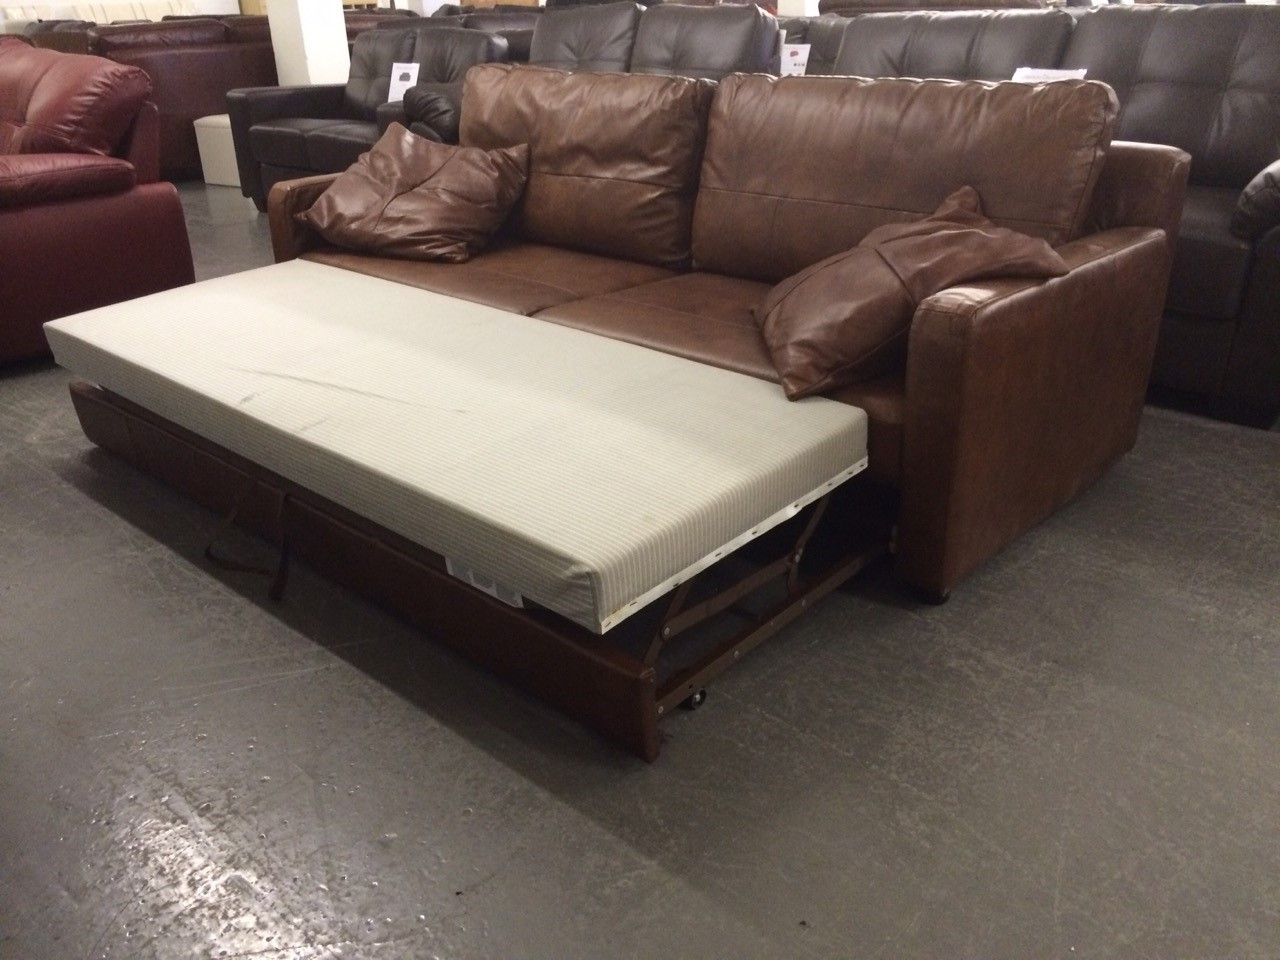 Aniline leather sofa bed refil sofa for Sofa bed jual